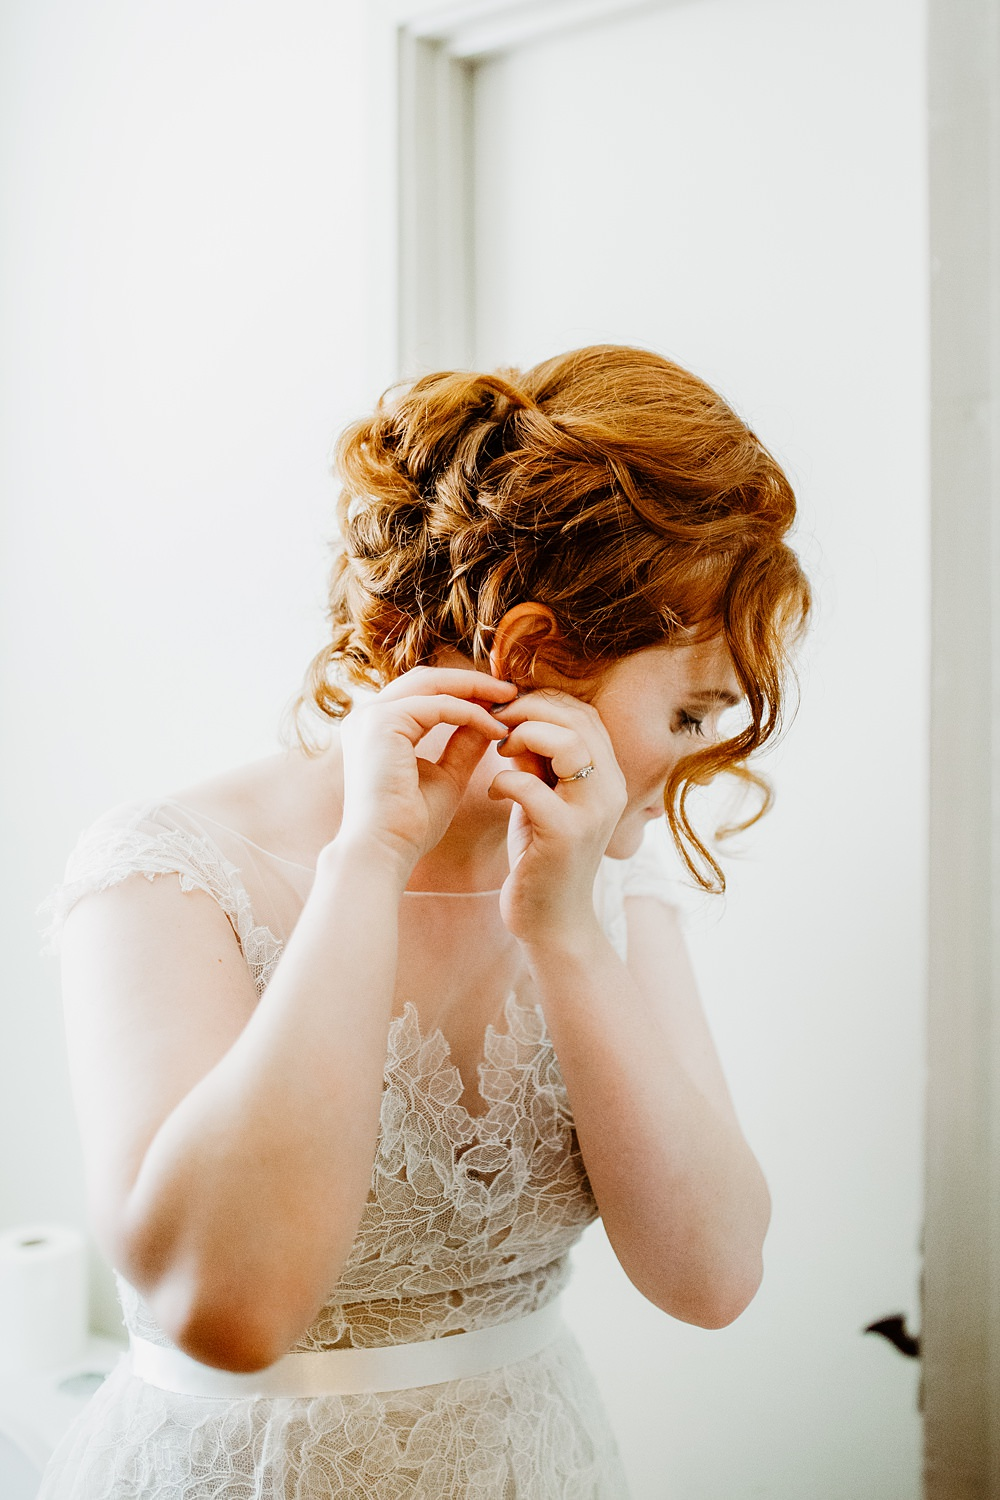 Bride Bridal Hair Style Up Do Canonteign Falls Wedding Holly Collings Photography